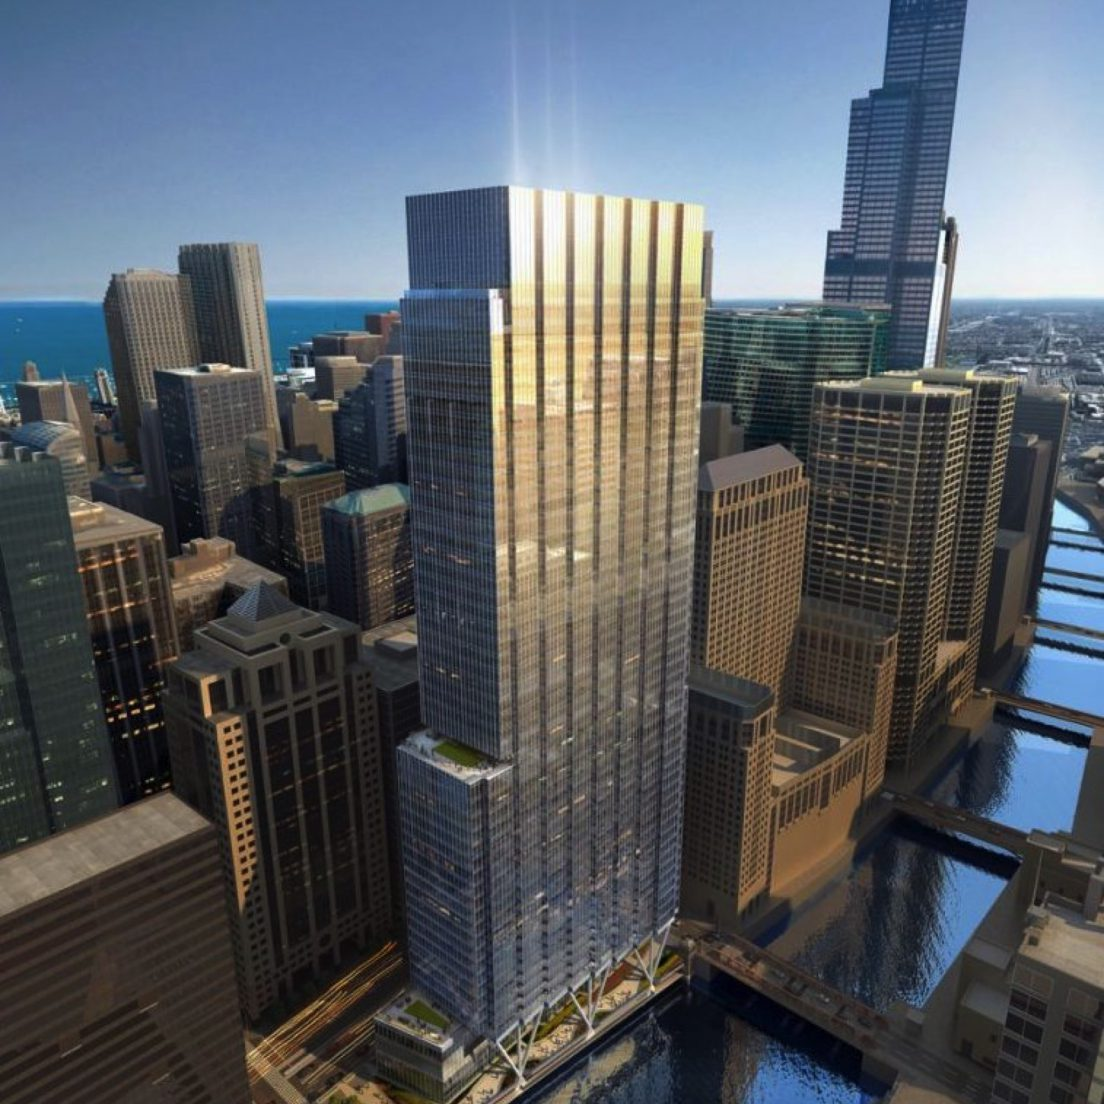 Revised rendering of 110 North Wacker (via Riverside Investments and Development)